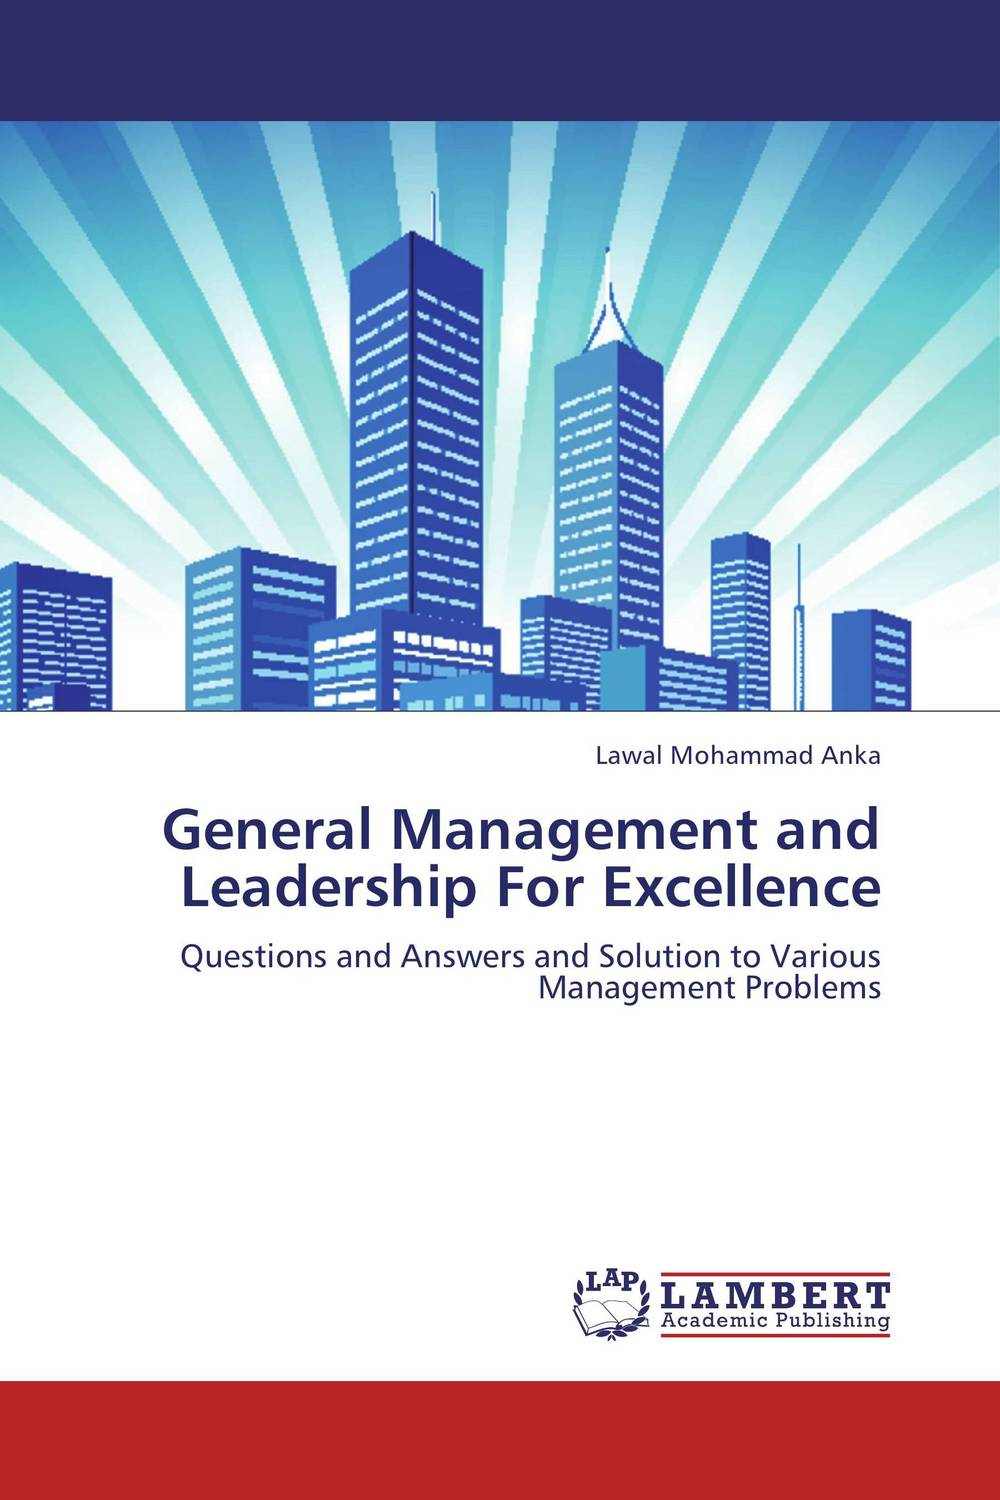 General Management and Leadership For Excellence sandals general managers